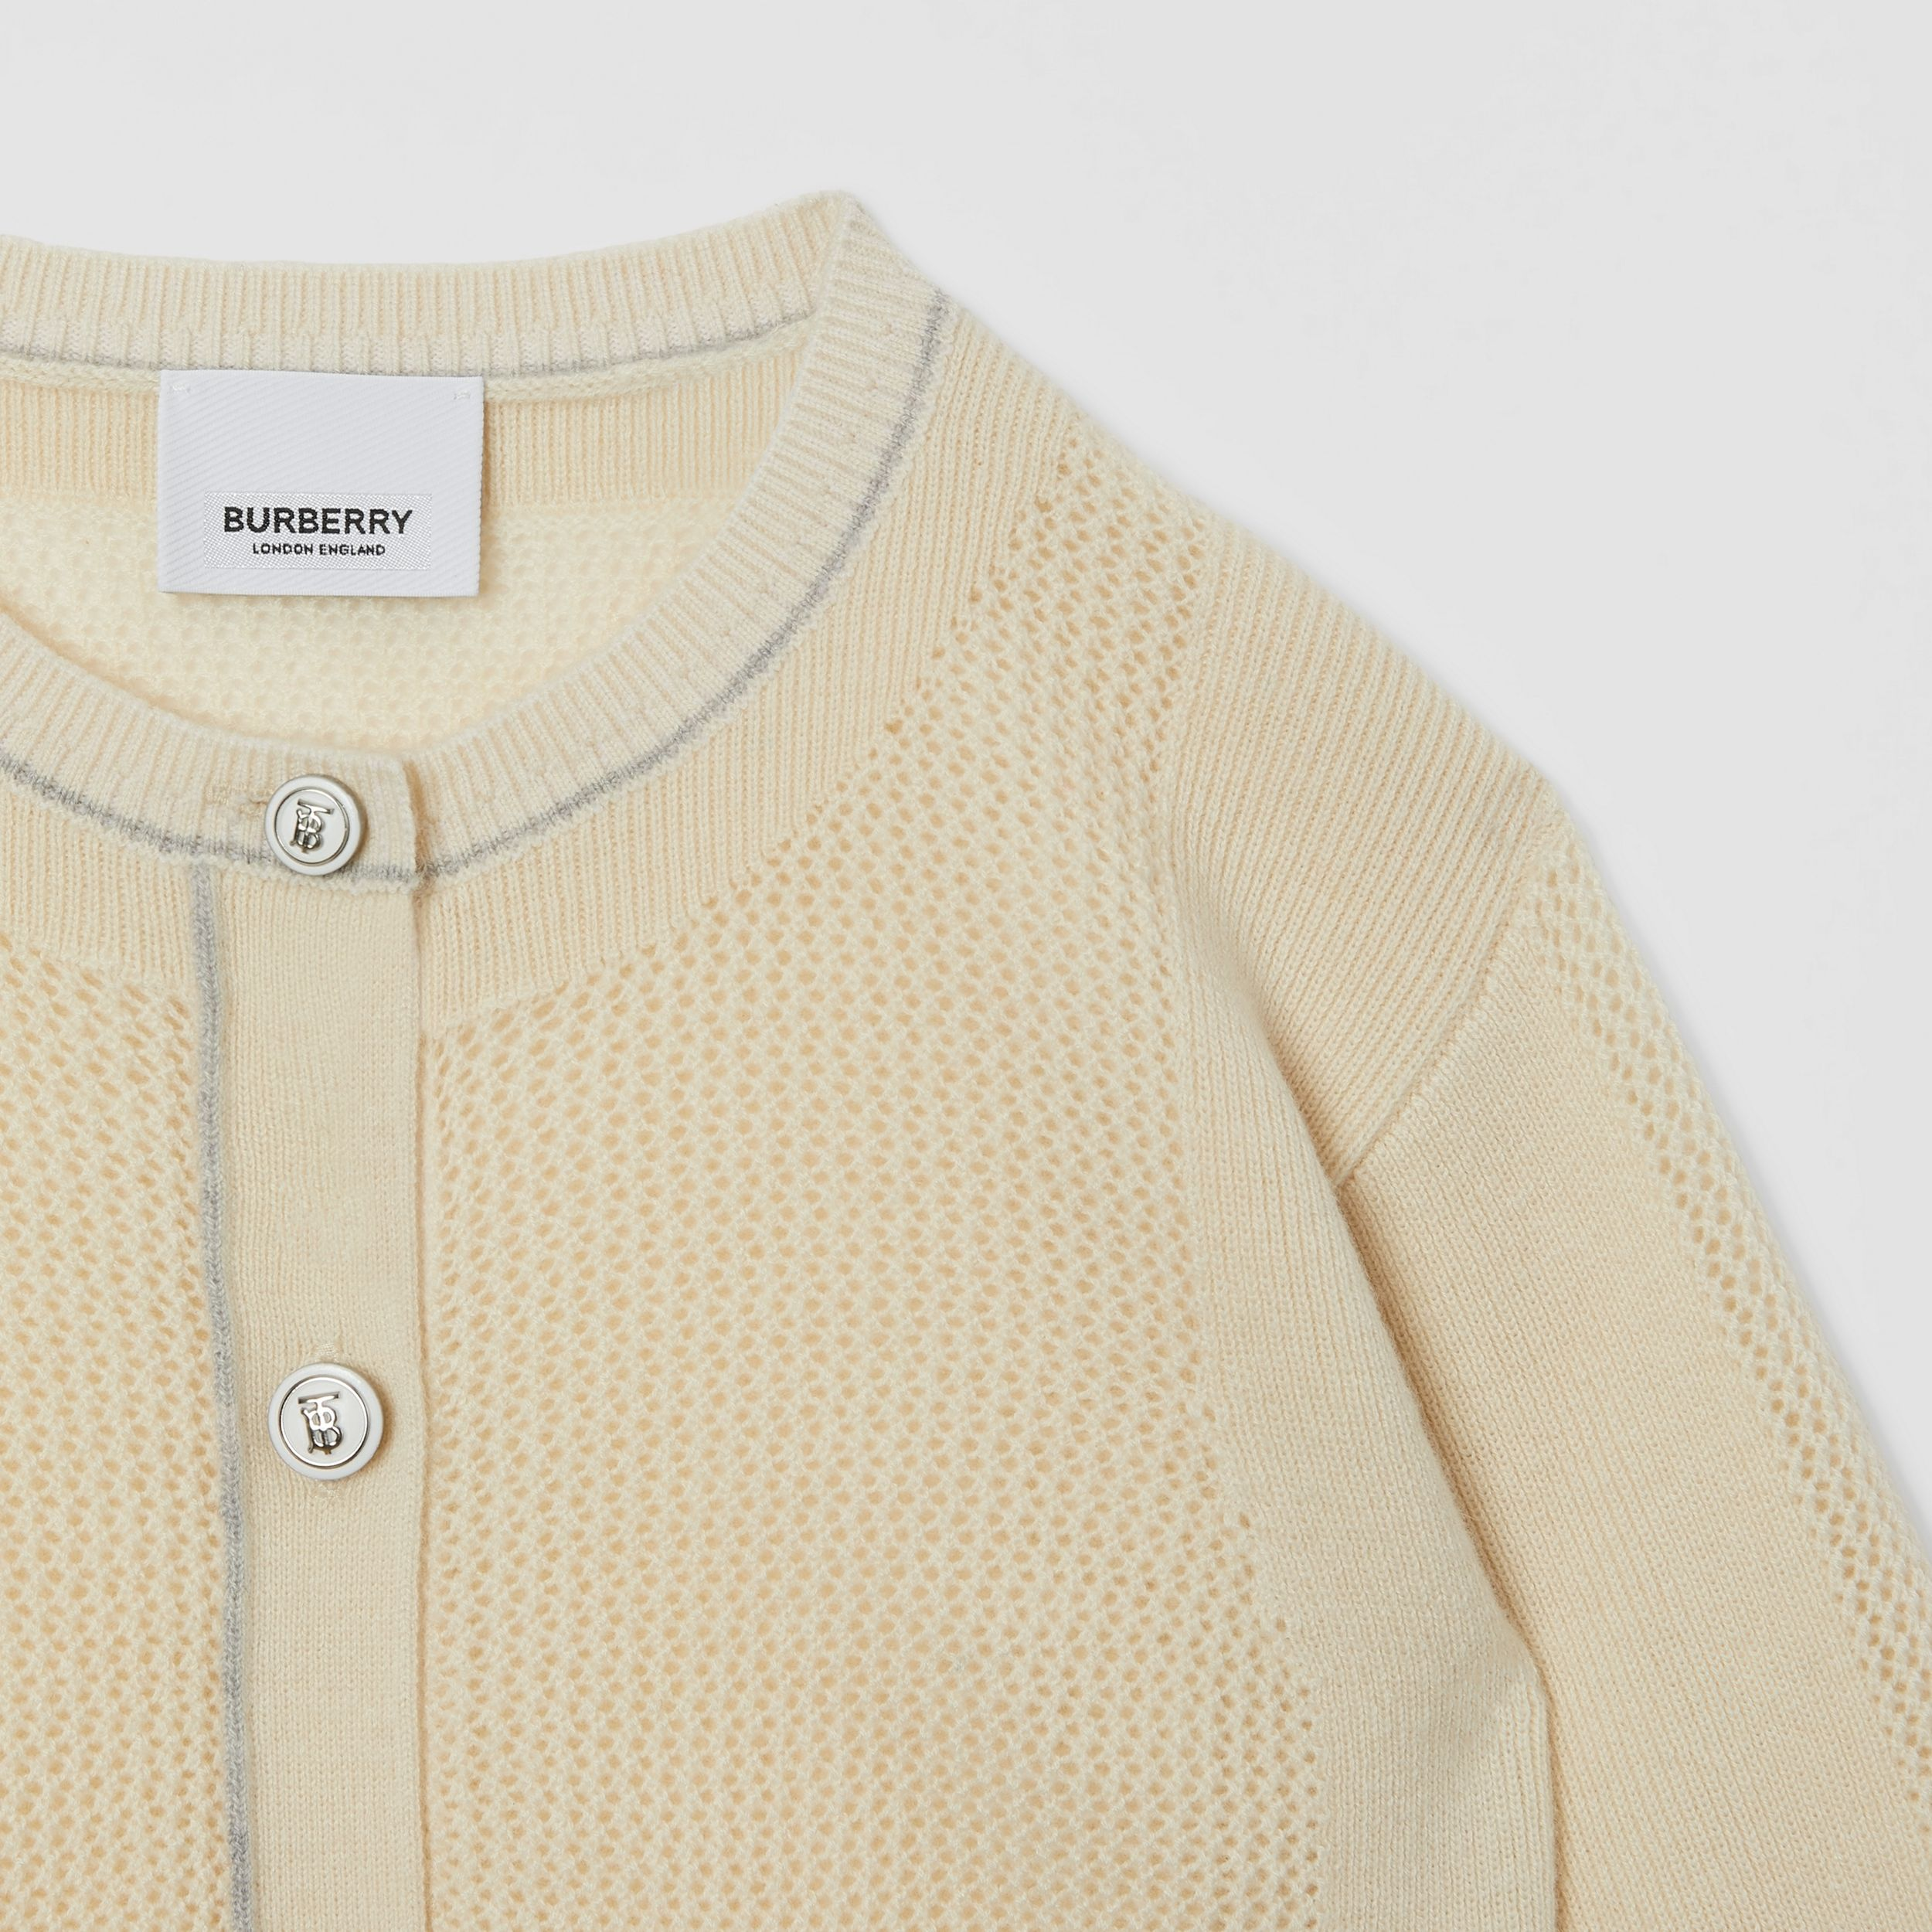 Monogram Motif Knitted Cashmere Cardigan in Ivory | Burberry - 4